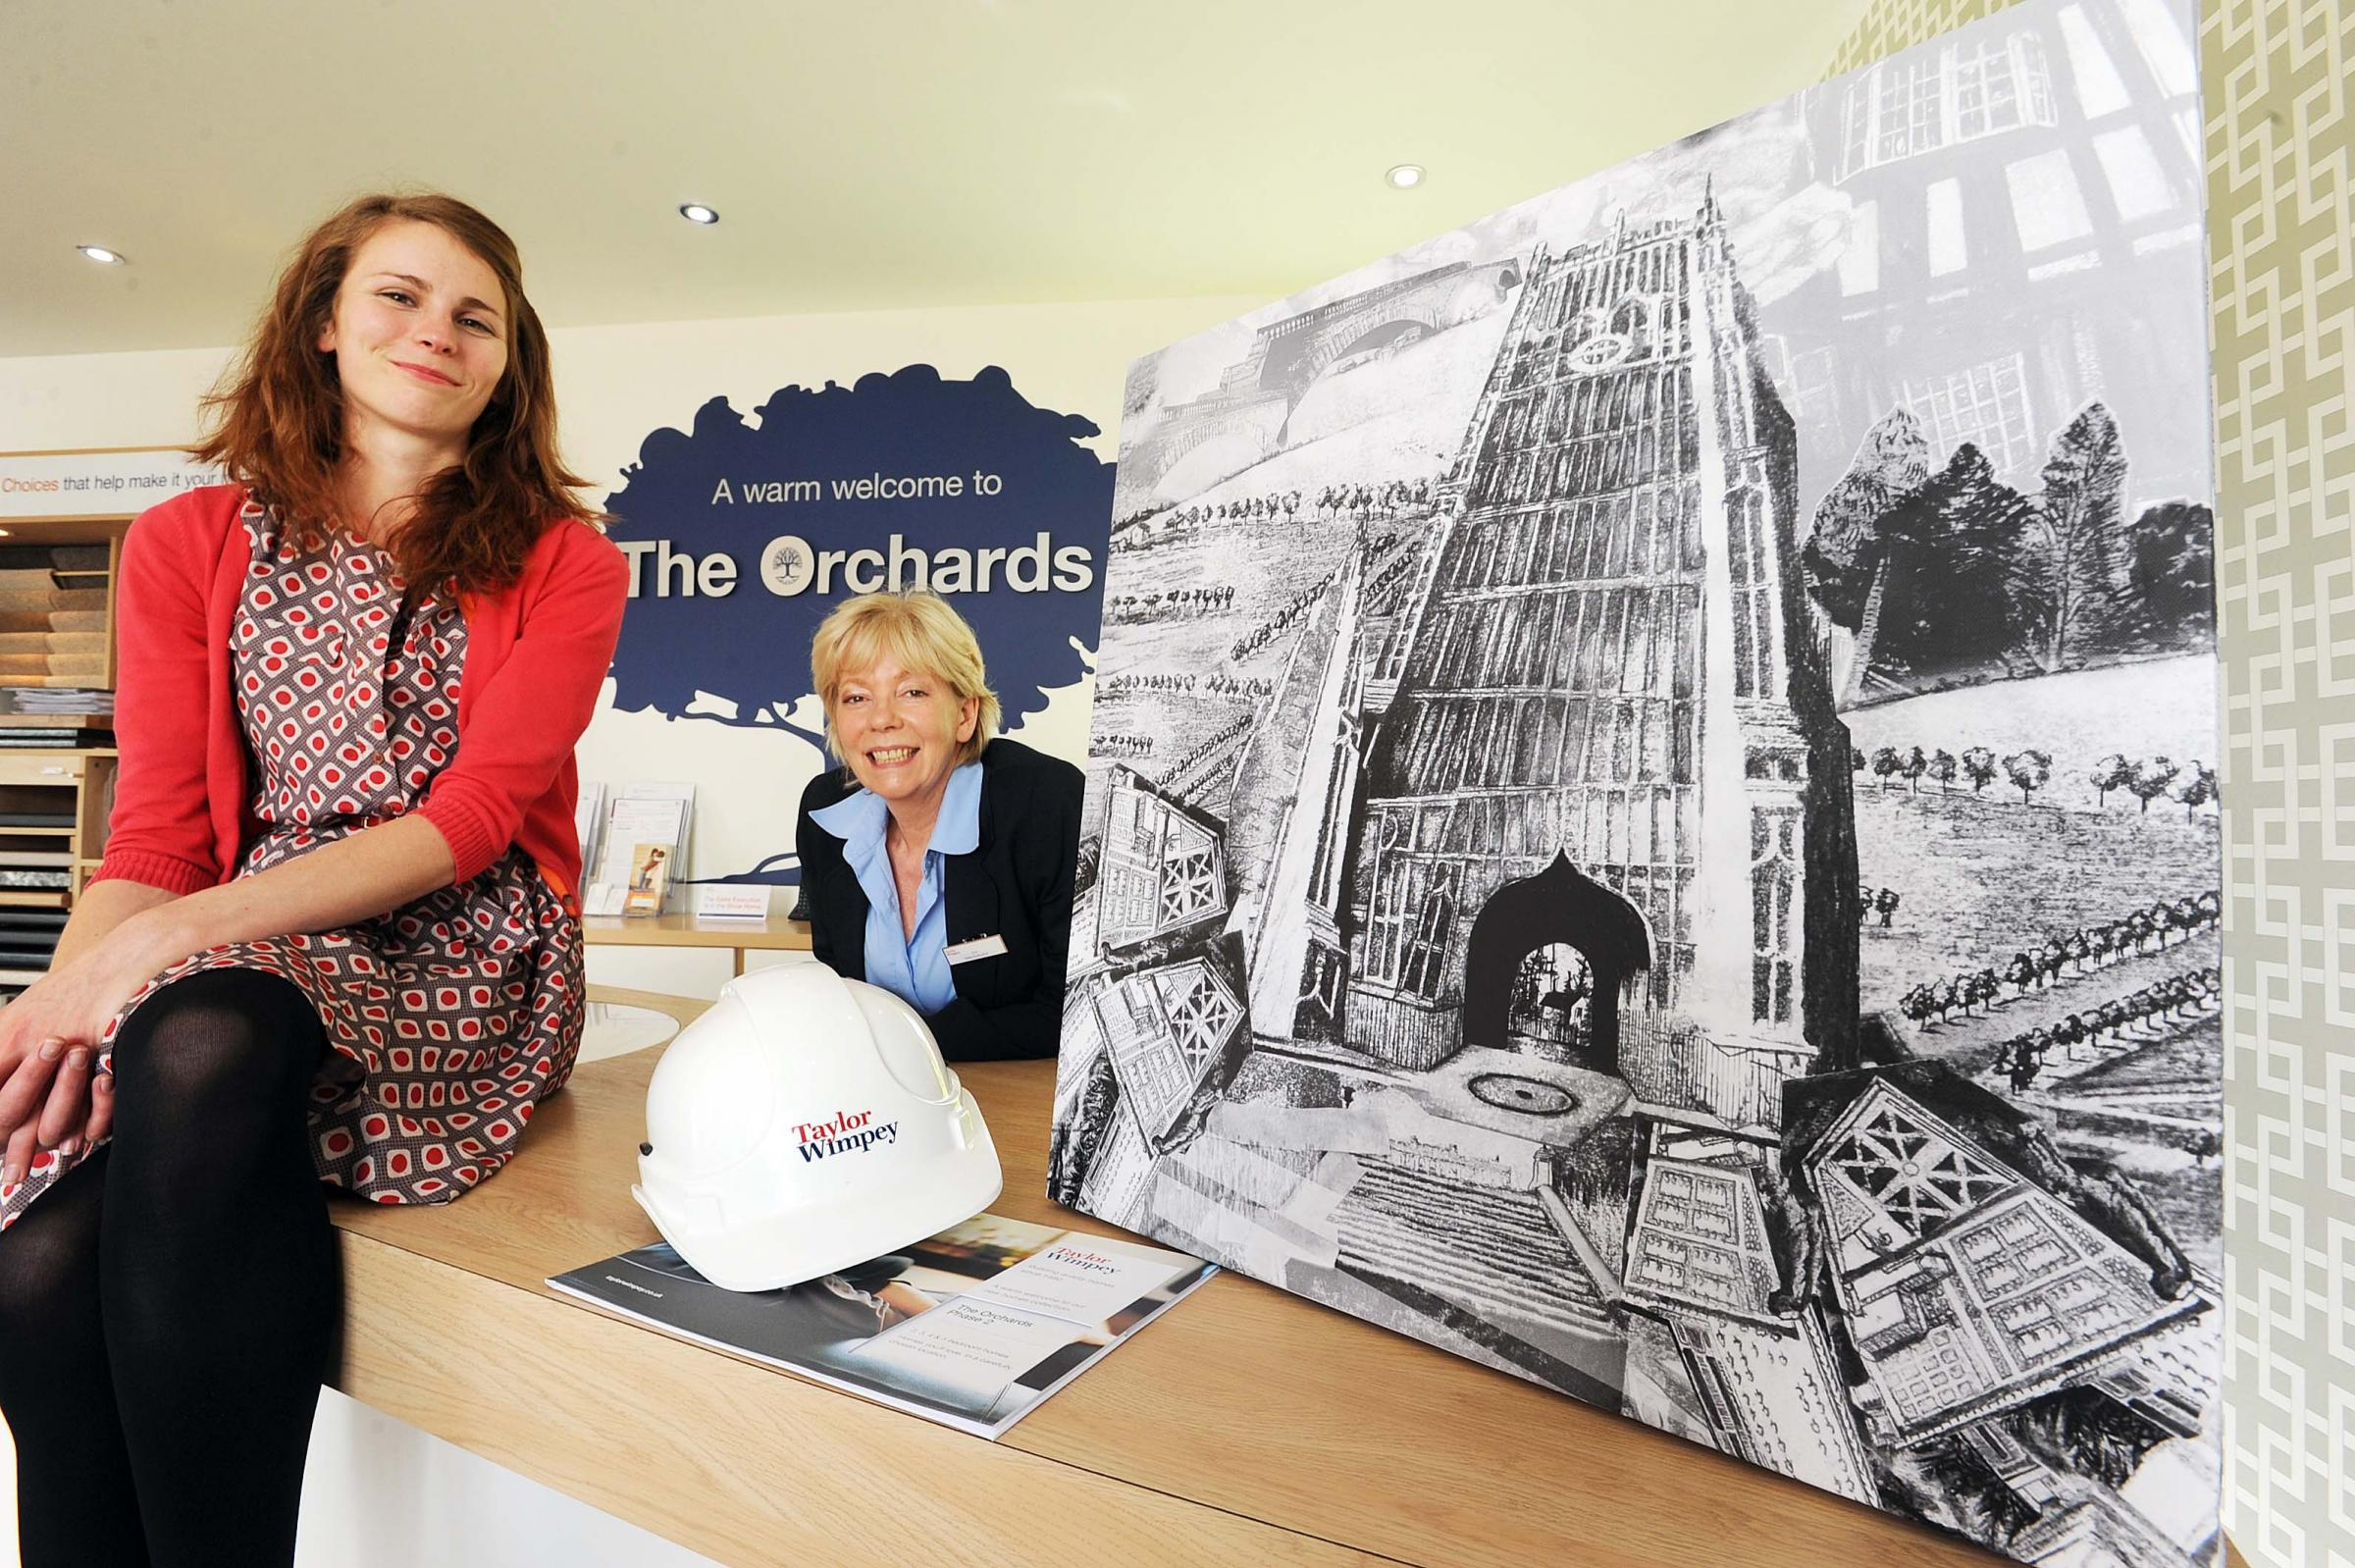 Artist Kitty Kovacevic (left) with Taylor Wimpey Sales Executive Sue Viner (right), at Taylor Wimpey's The Orchards development in Evesham.